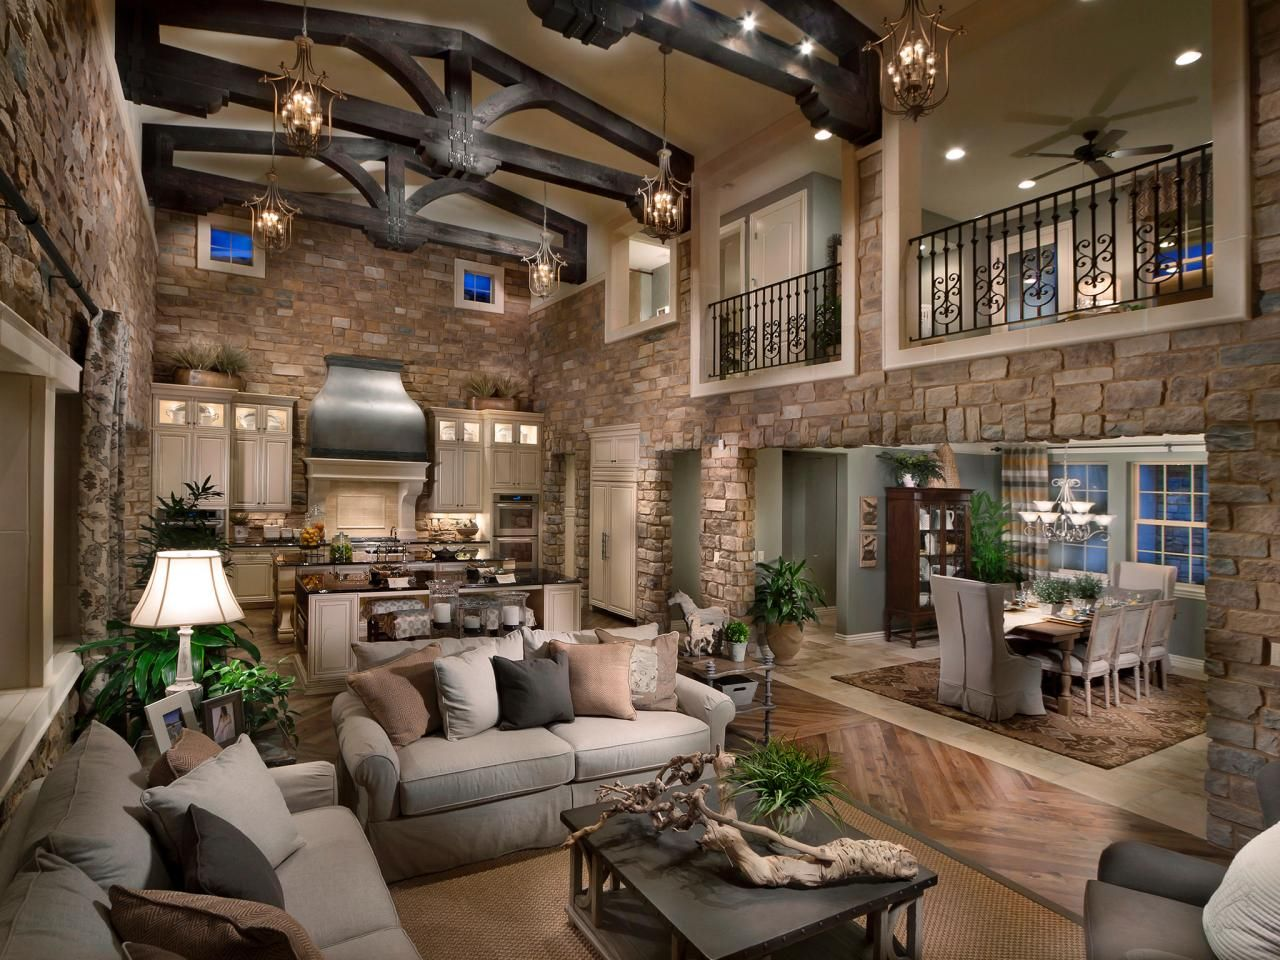 Best This Rustic Living Room And Kitchen Is A Magnificent Space 640 x 480